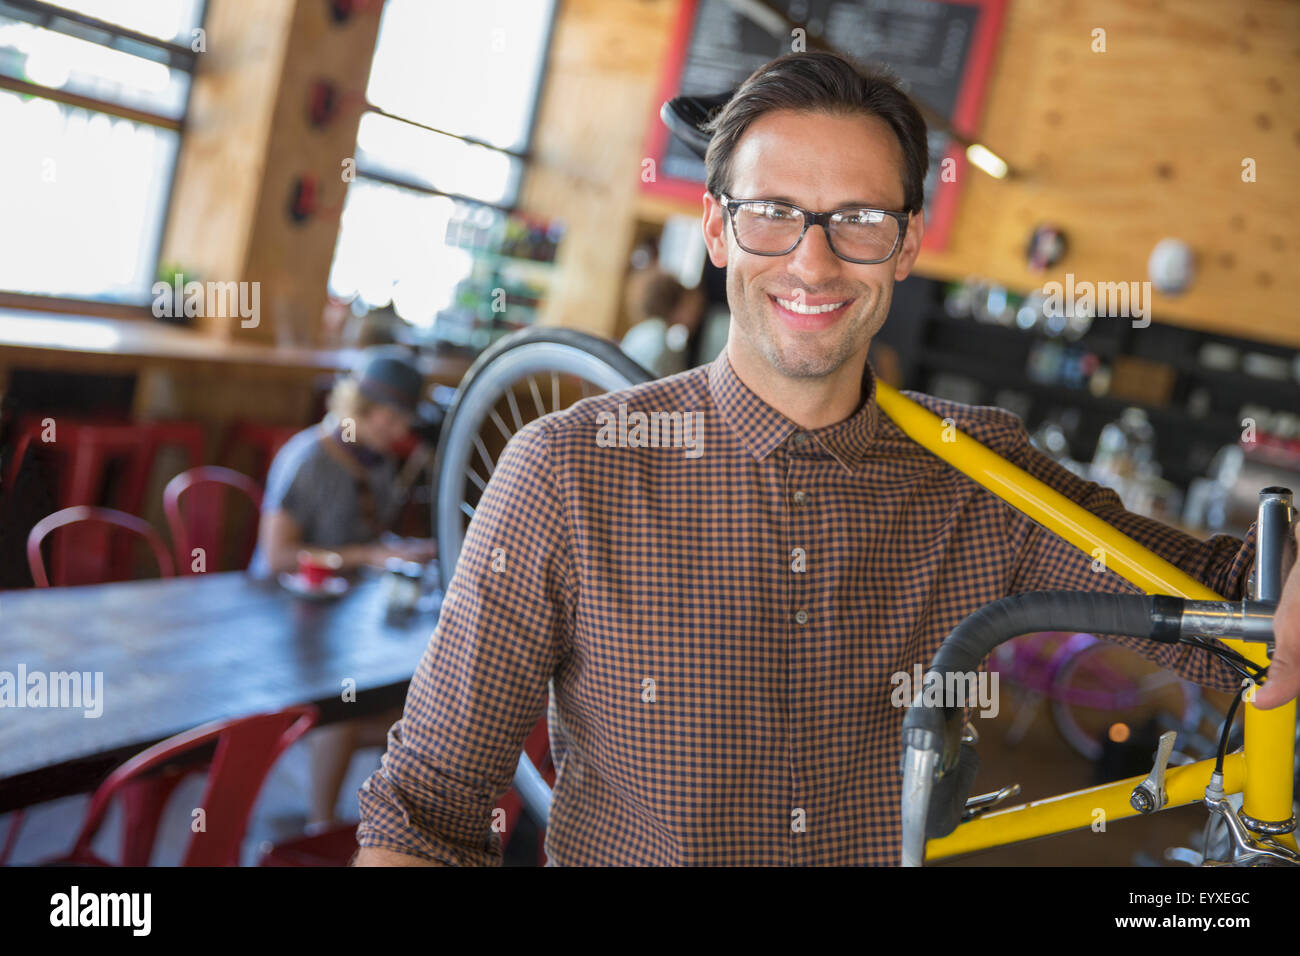 Portrait smiling man with eyeglasses carrying bicycle in cafe - Stock Image